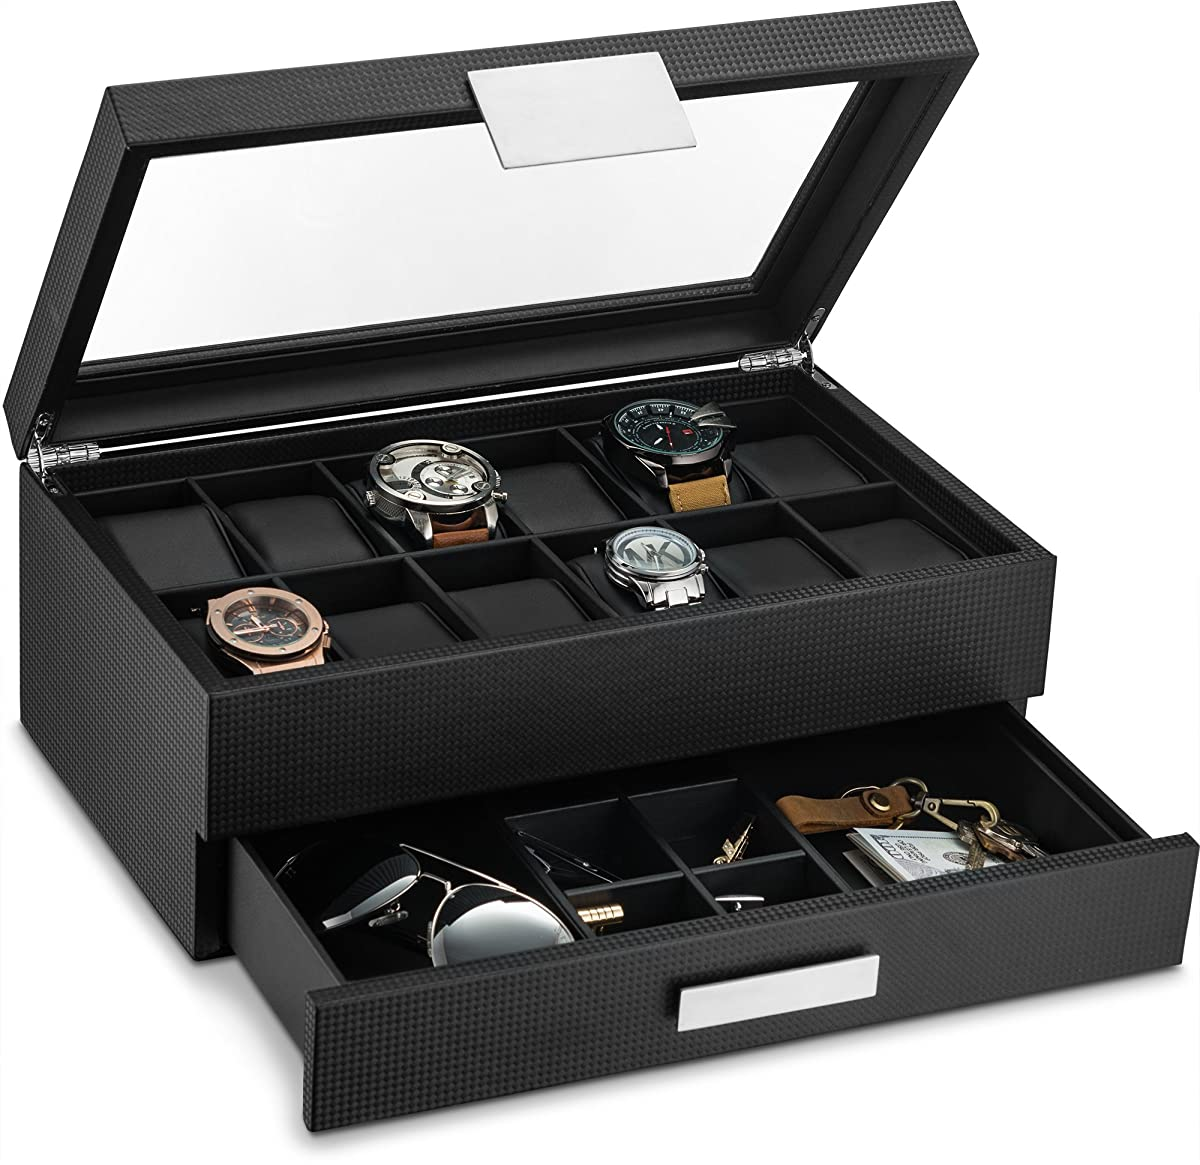 Glenor Co Watch Box with Valet Drawer for Men - 12 Slot Luxury Watch Case Display Organizer, Carbon Fiber Design - Metal Buckle for Mens Jewelry Watches, Mens Storage Boxes Holder has Large Glass Top